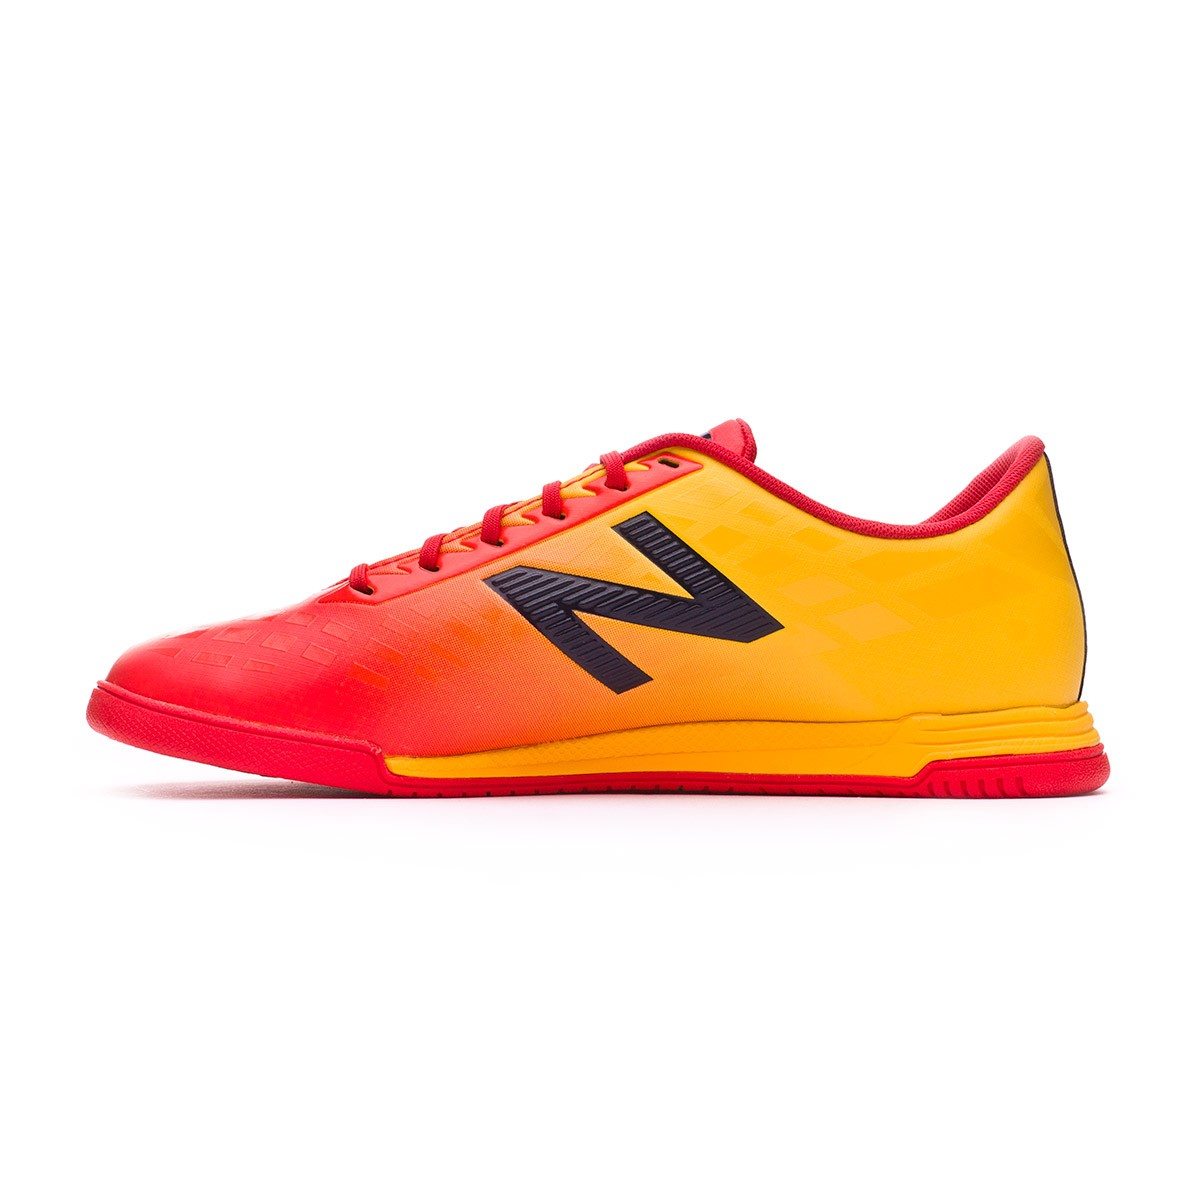 41abff2069c Tenis New Balance Furon 4.0 Dispatch Indoor Niño Flame - Soloporteros es  ahora Fútbol Emotion